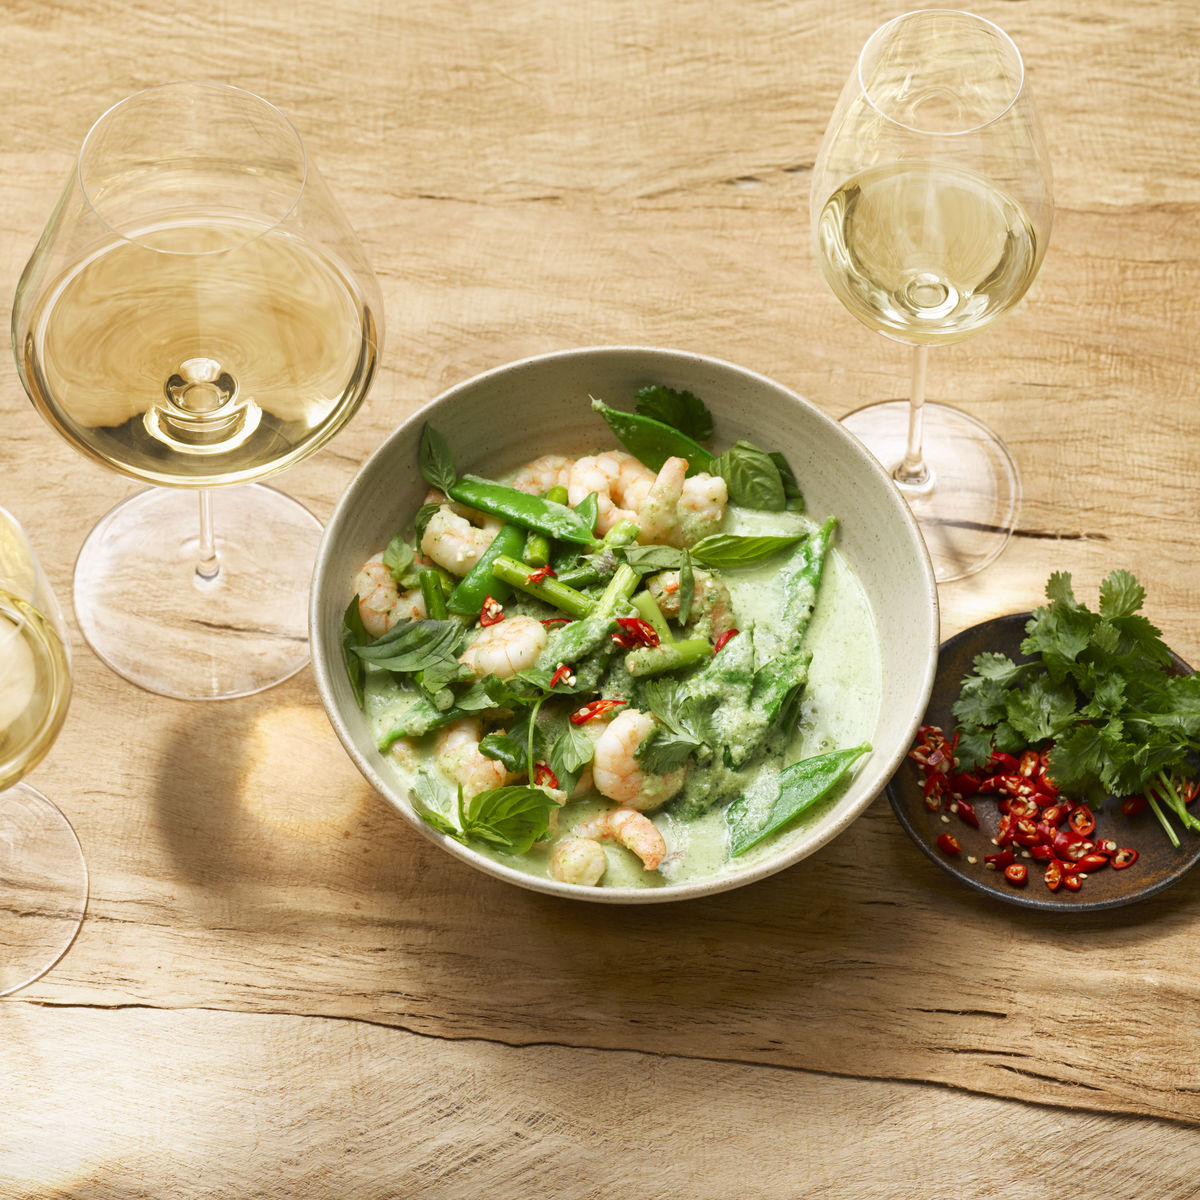 The picture shows green thai curry and three glasses of white wine.